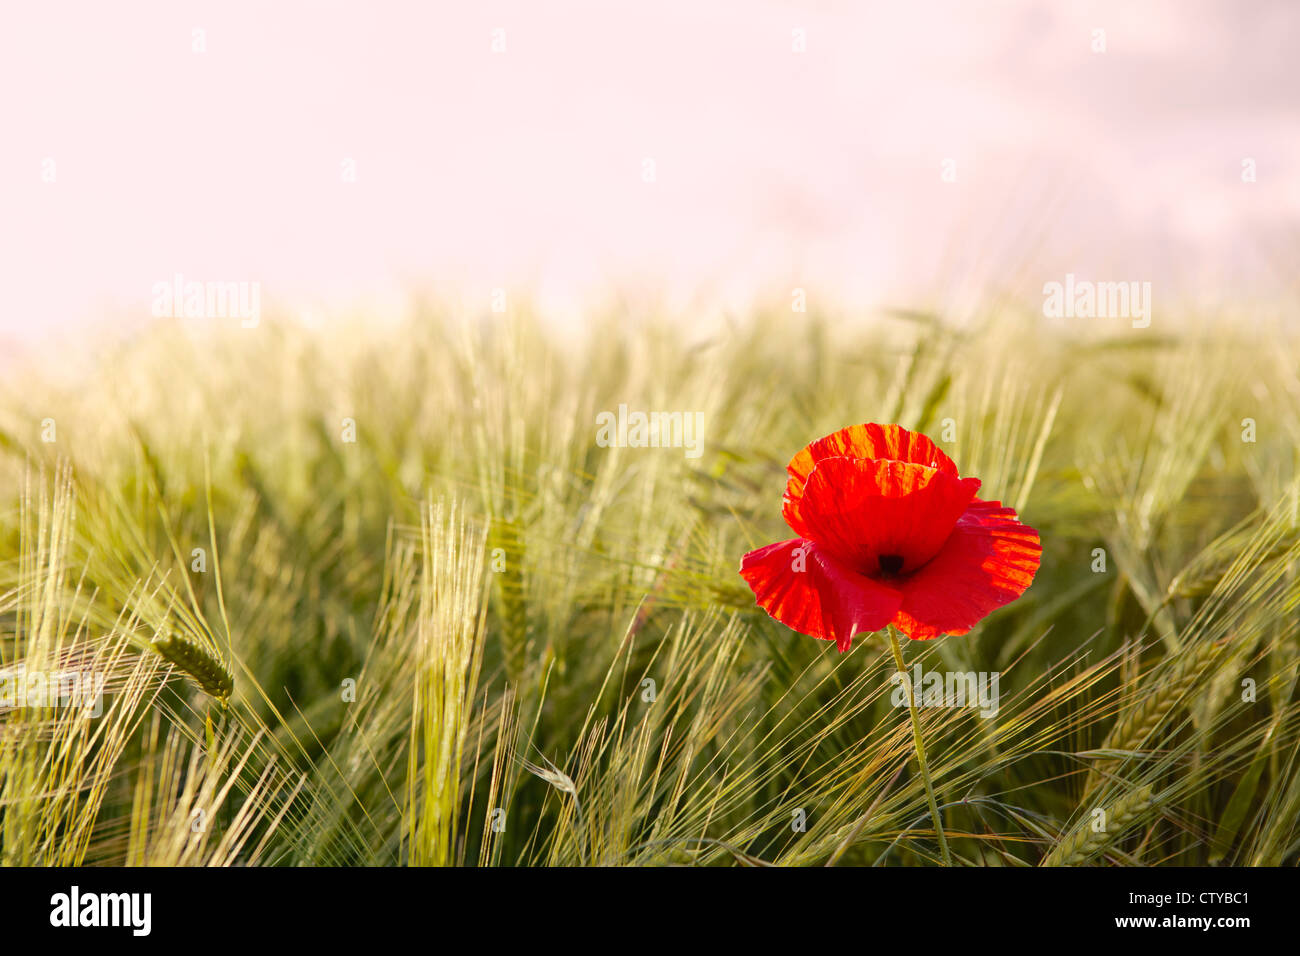 Poppies in Barley Field - Stock Image